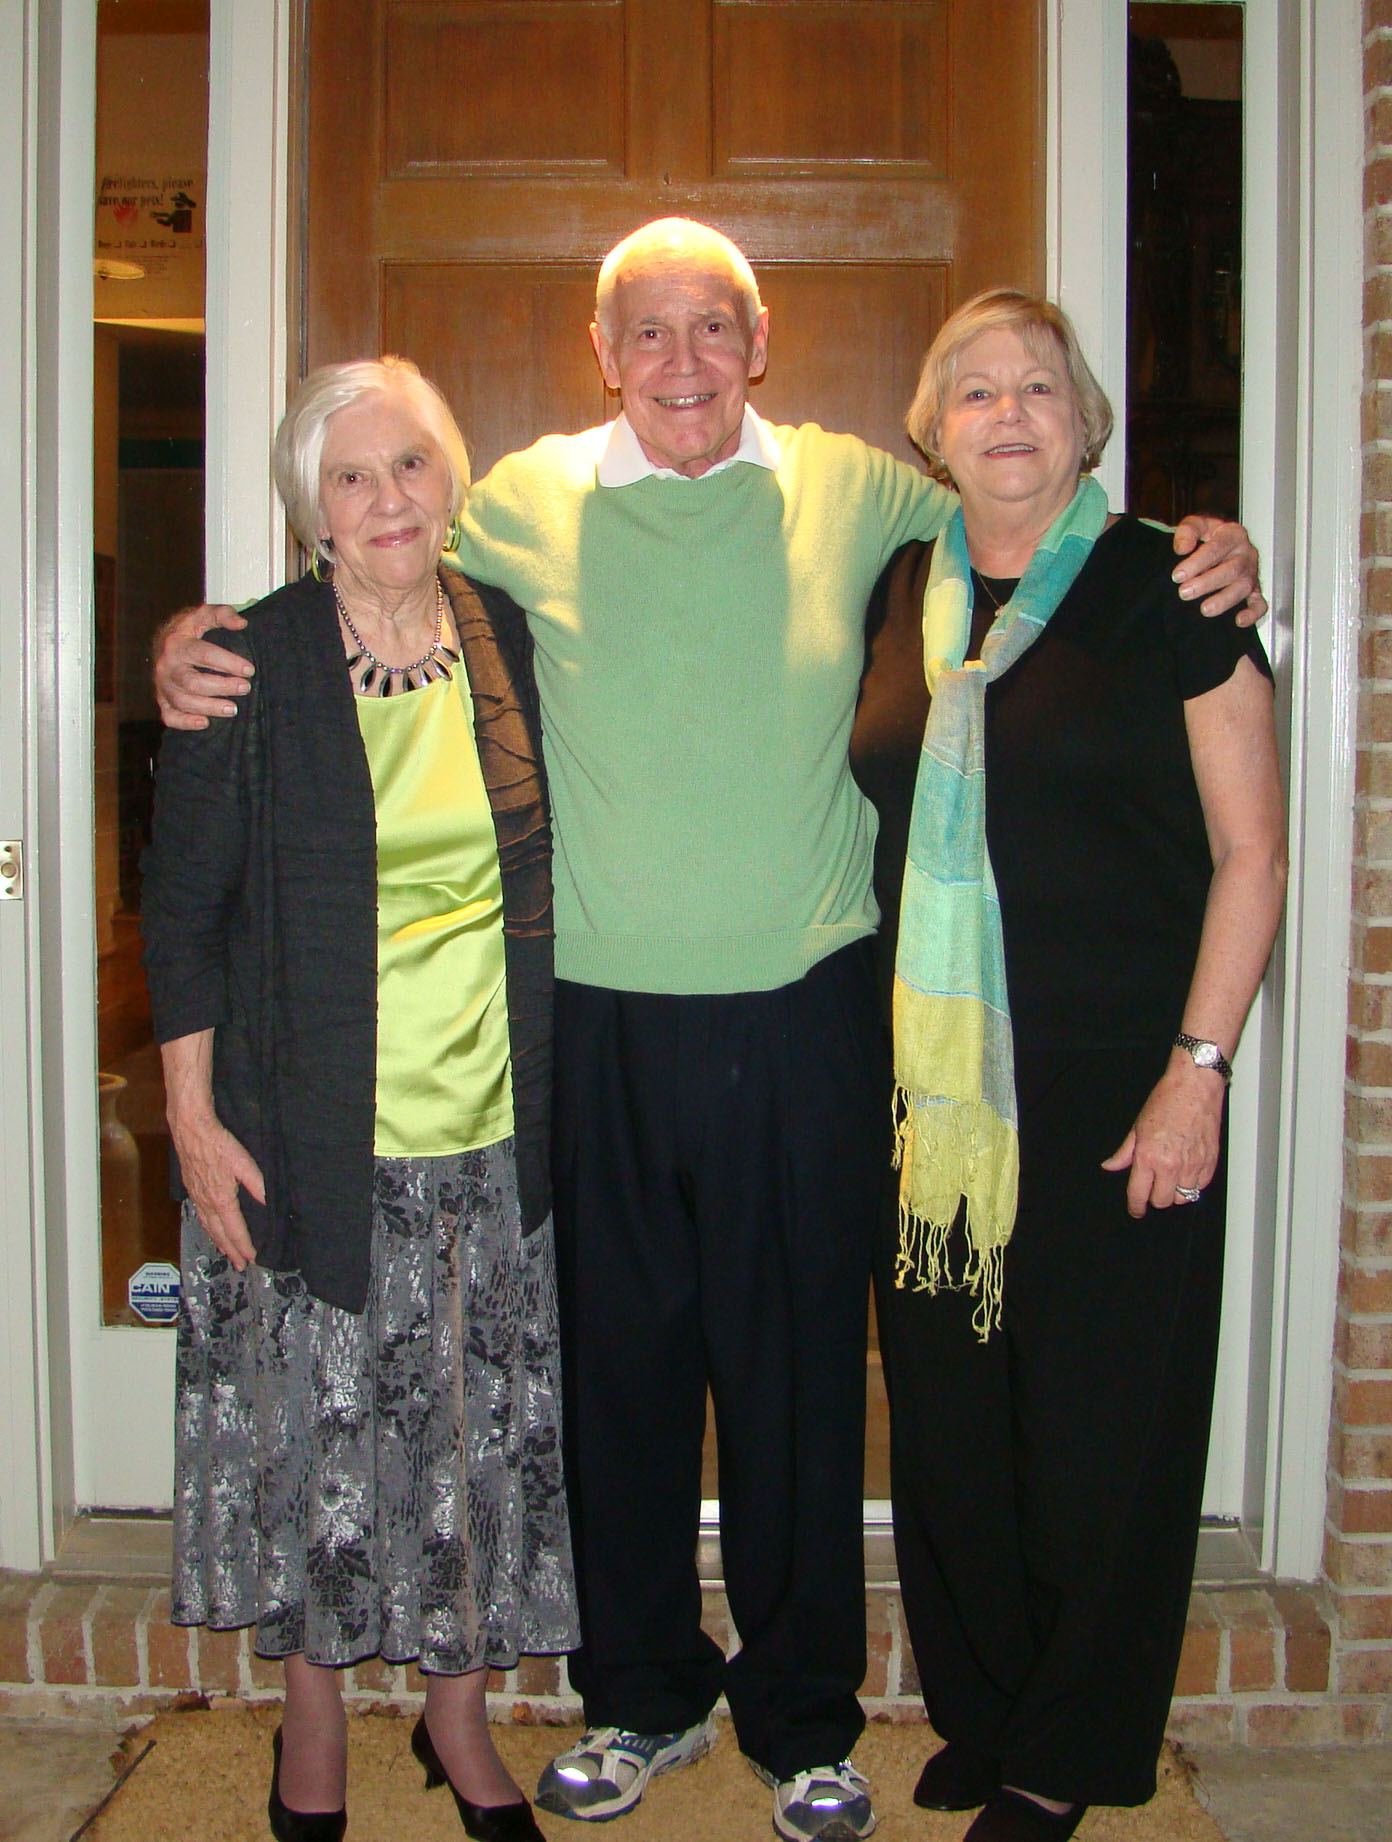 Russell Shaver with sisters Ann Lloyd (L) and Sally Bauernfeind (R)/Photo courtesy of the Shaver family